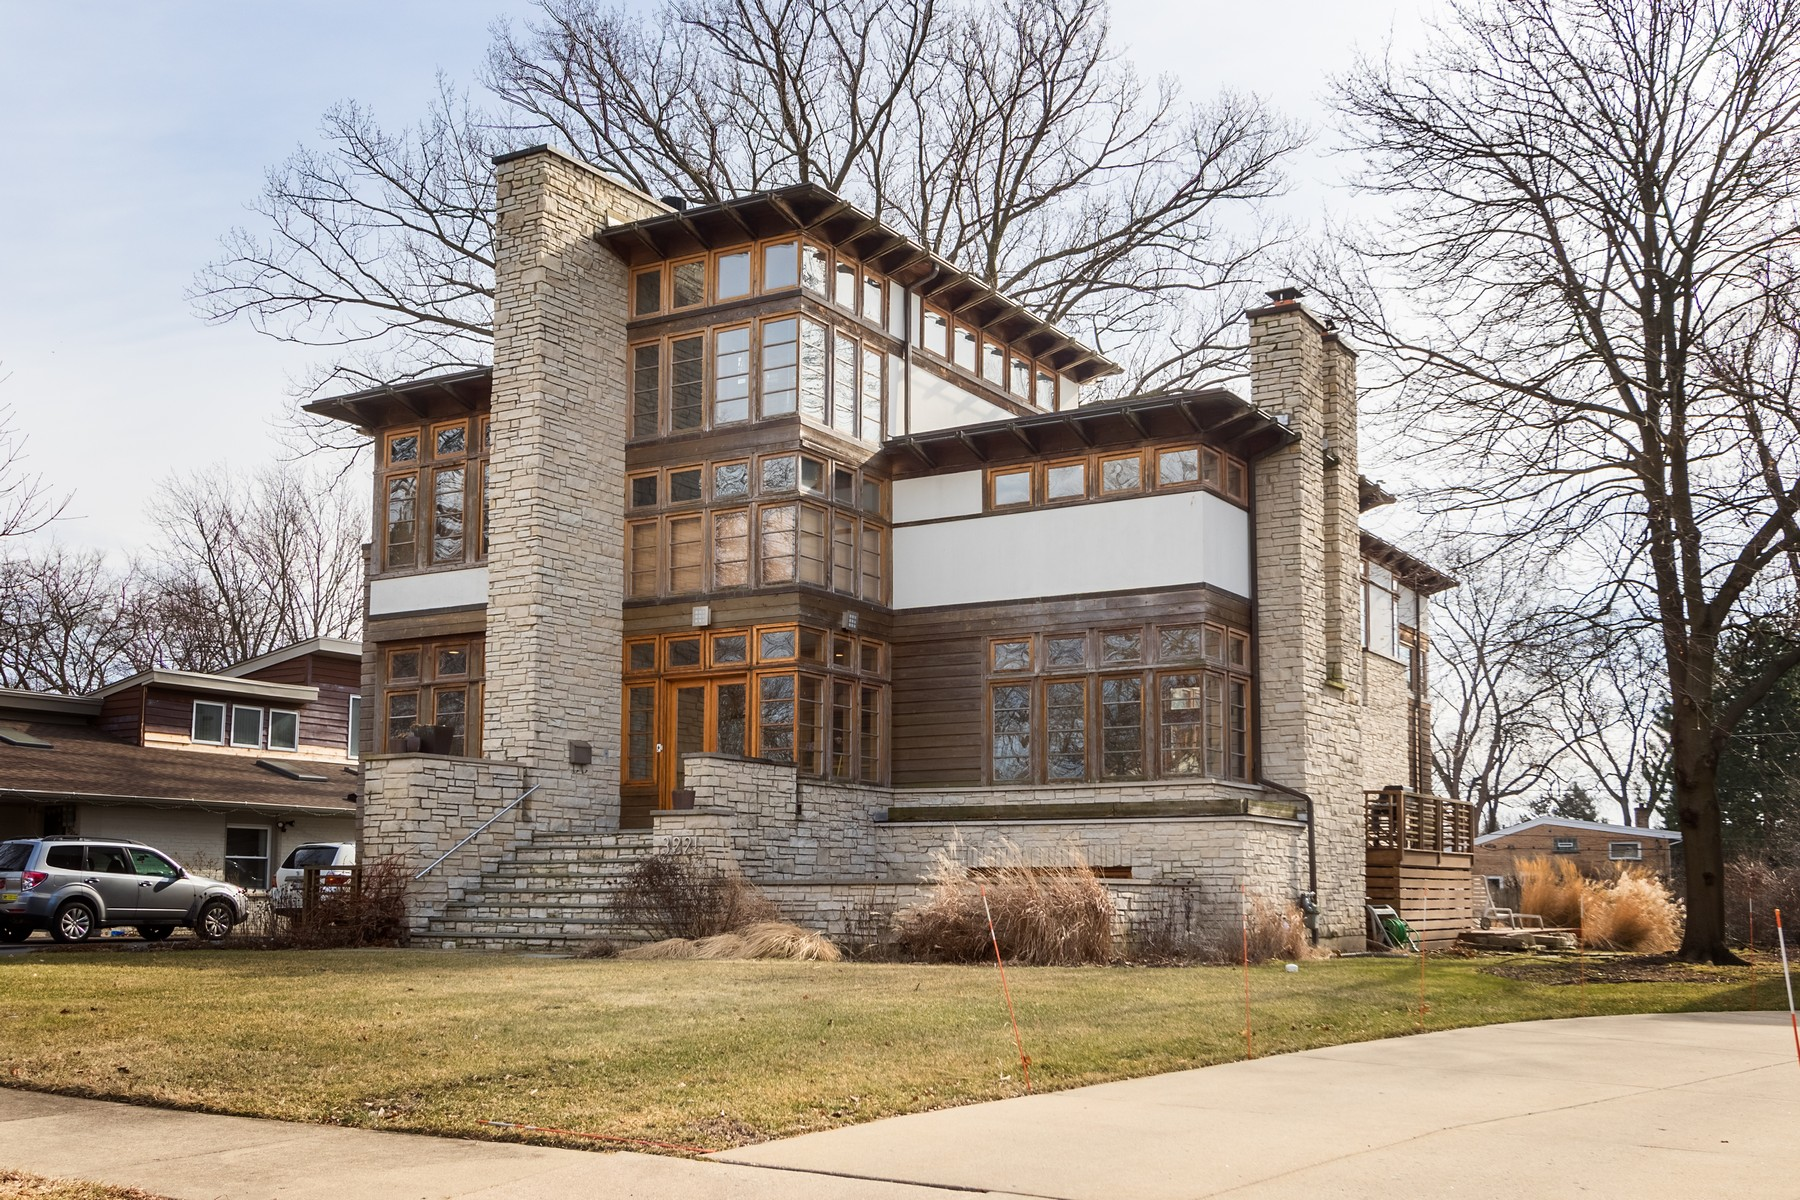 Single Family Home for Sale at One of a Kind, Contemporary Wilmette Home 3221 Wilmette Avenue Wilmette, Illinois, 60091 United States